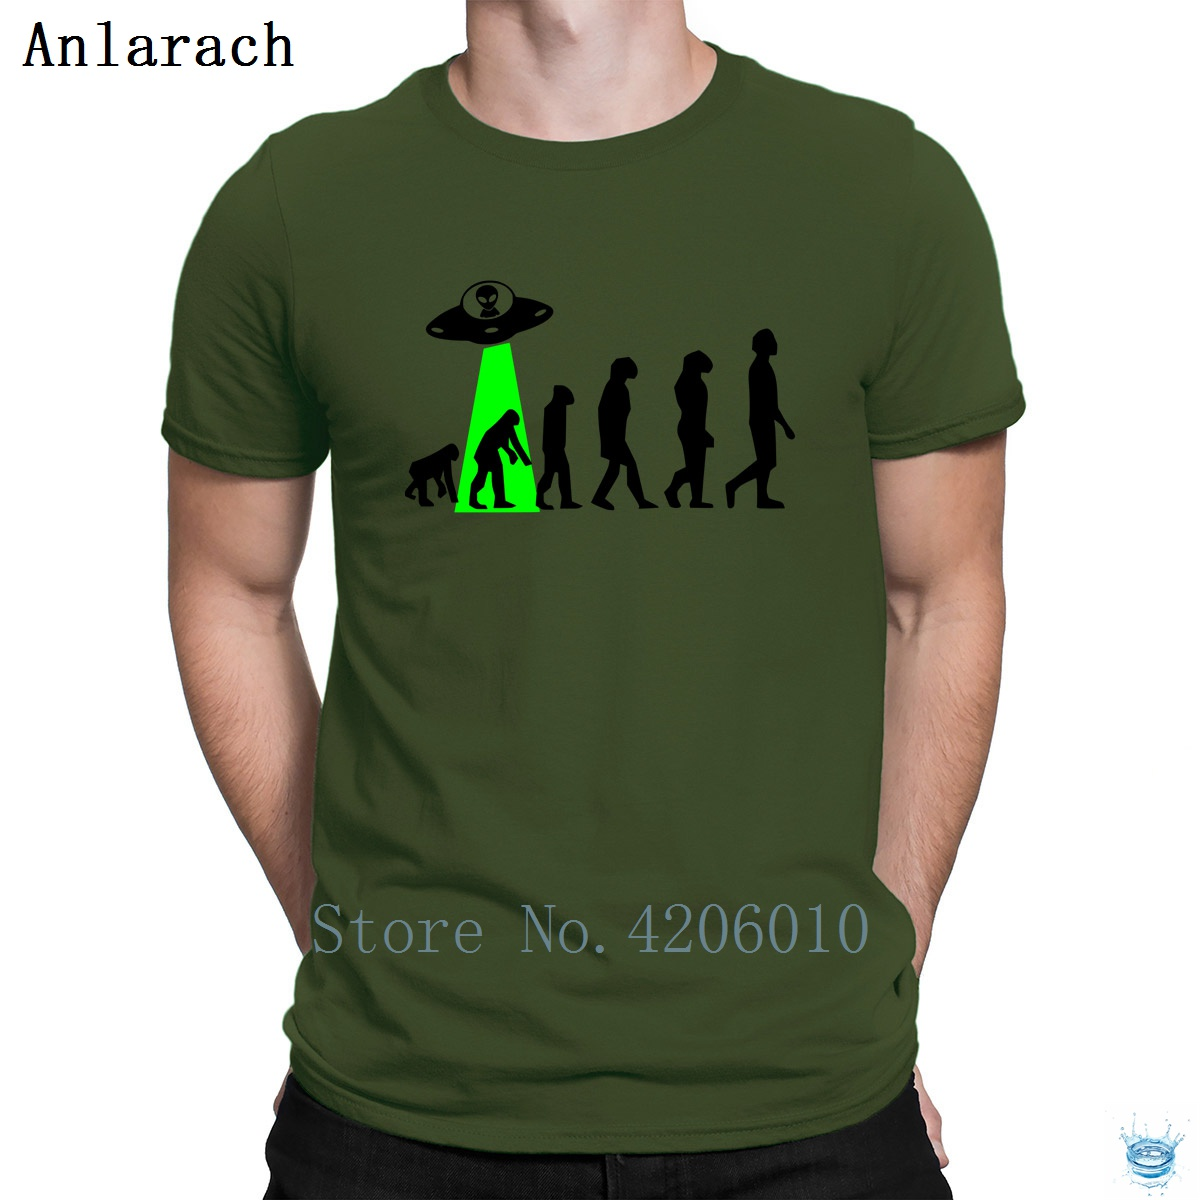 Human Evolution Timeline By Aliens T-Shirts Cheap Popular Designs Tshirt For Men 100% Cotton Solid Color 2018 Anlarach Branded